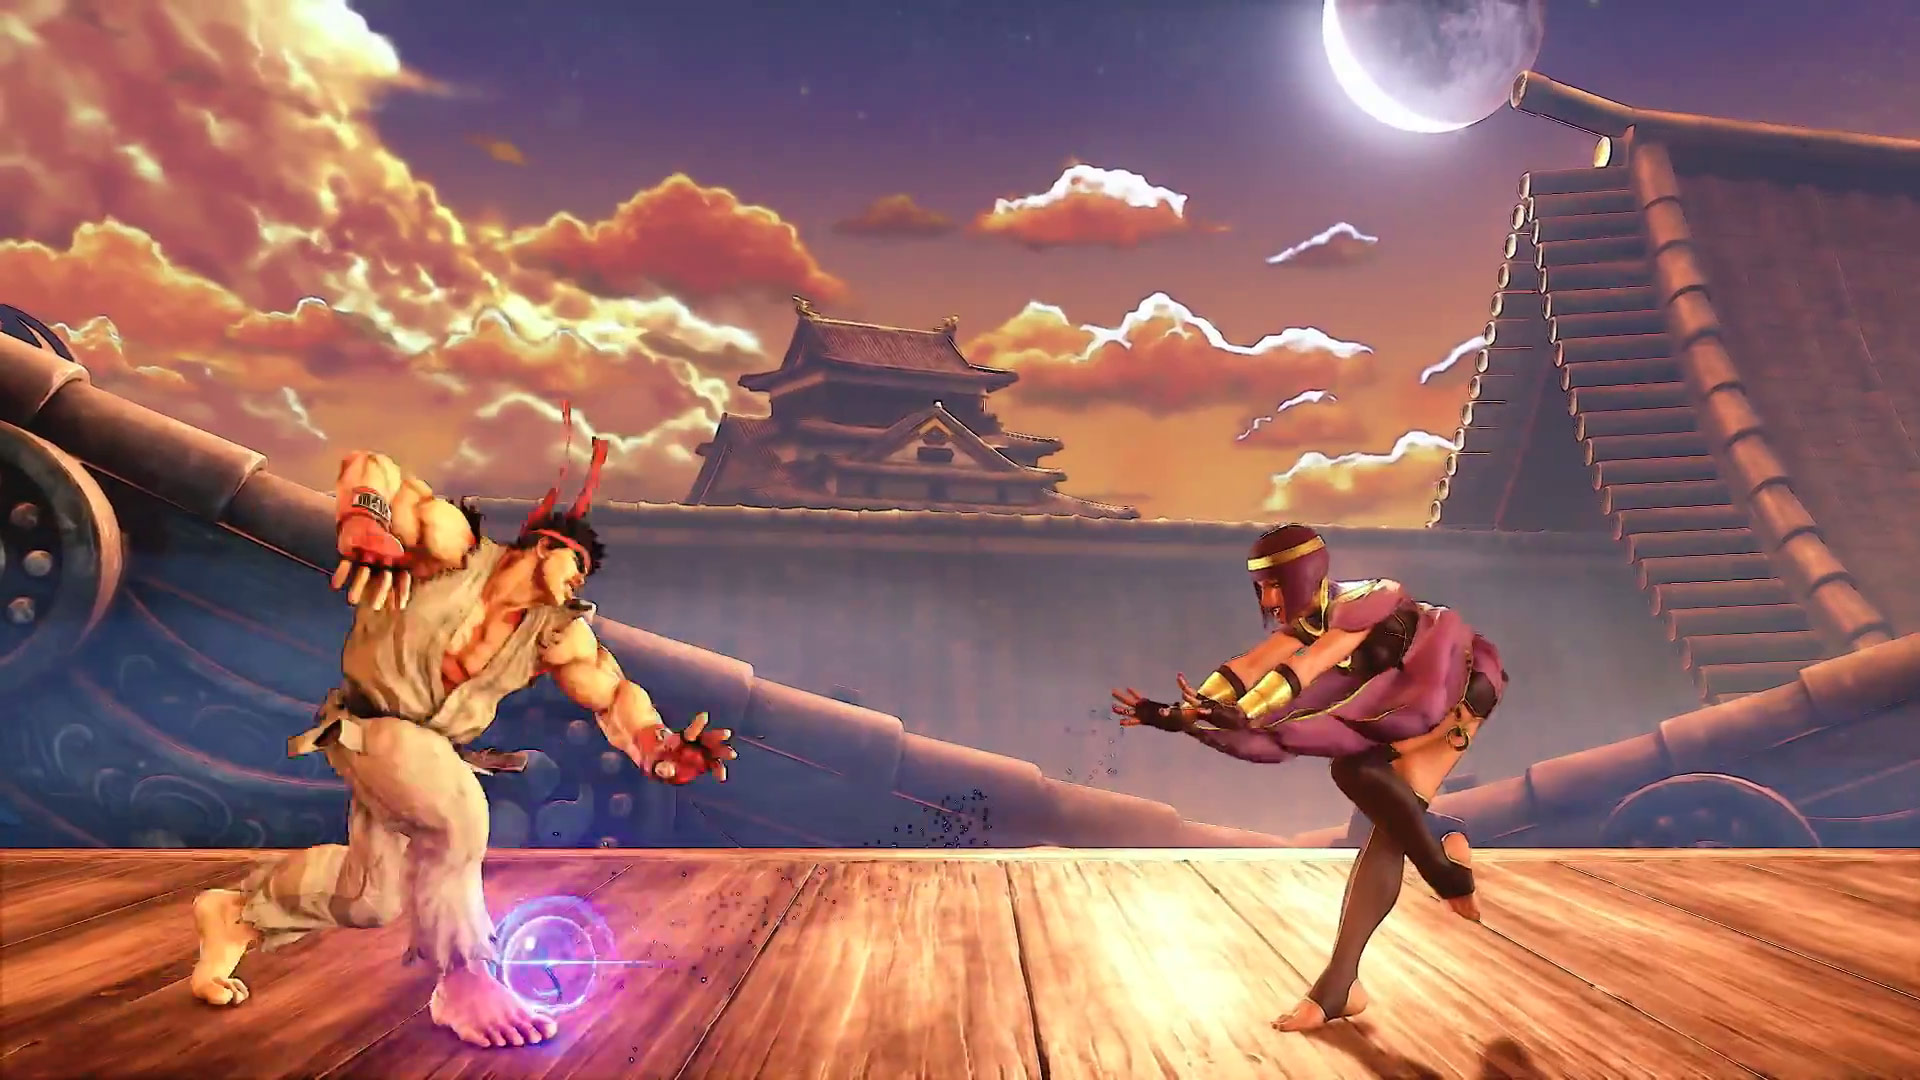 Menat announced for Street Fighter 5 reveal images 5 out of 6 image gallery